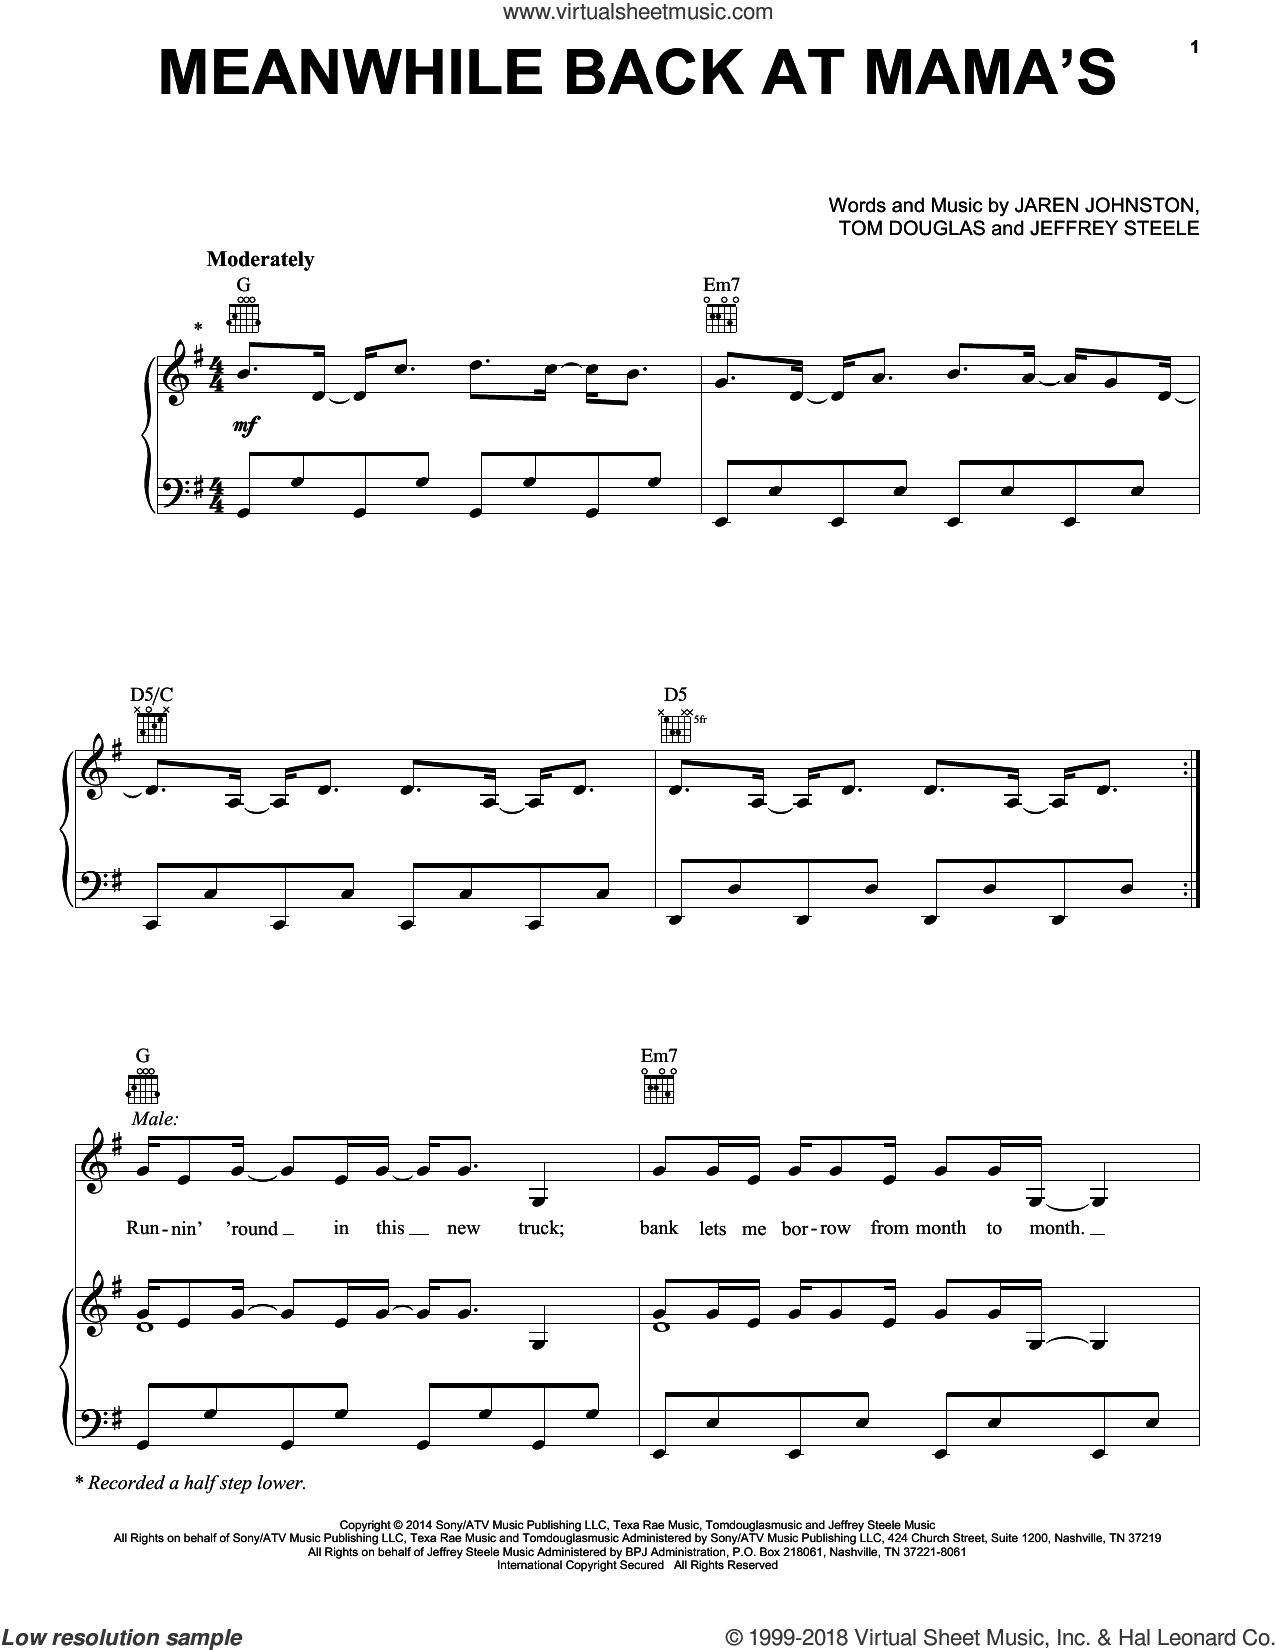 Meanwhile Back At Mama's sheet music for voice, piano or guitar by Tom Douglas, Faith Hill with Tim McGraw, Jaren Johnston and Jeffrey Steele, intermediate skill level